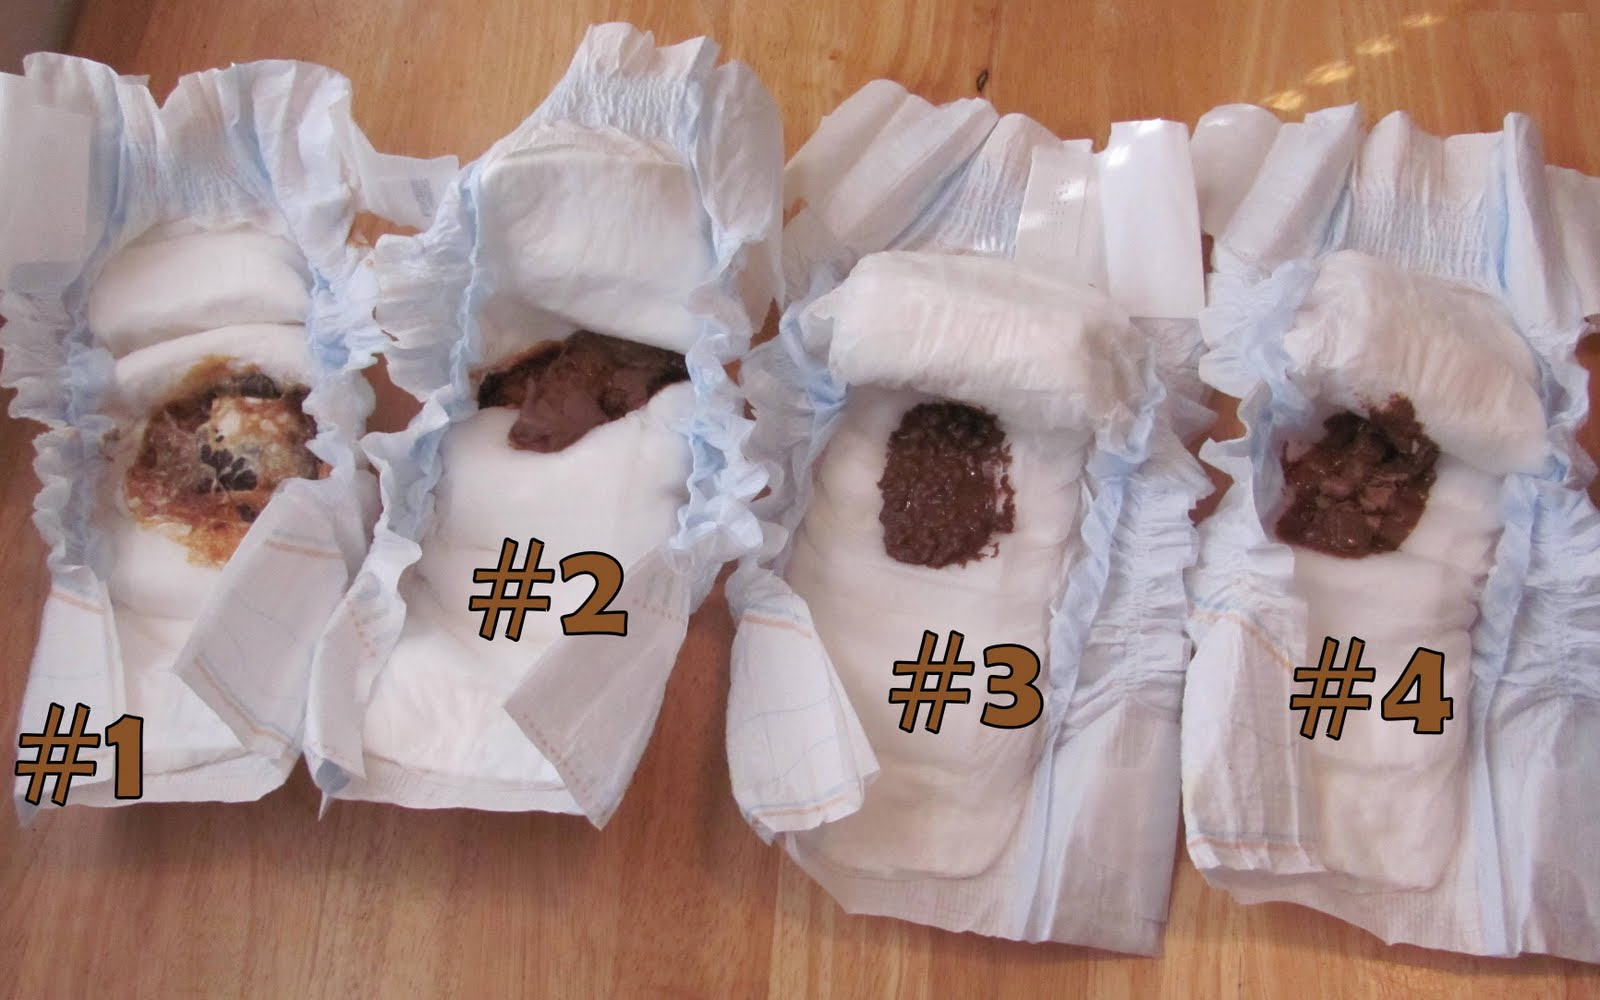 Worst Baby Shower Games. An image of a diaper with melted candy bars in them representing BabyBety's article on Worst Baby Shower Games.